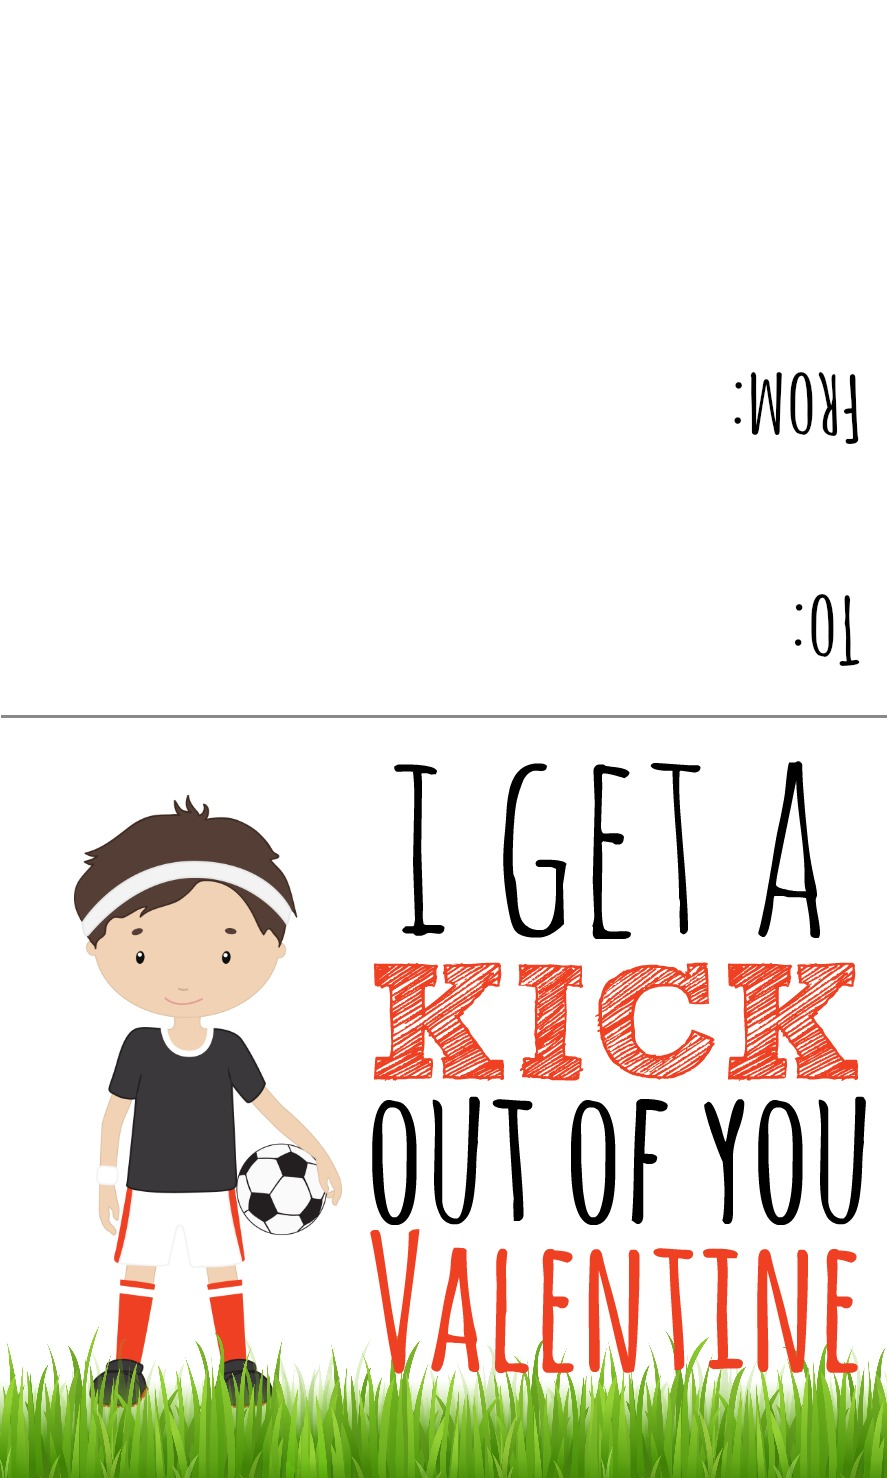 Boy valentine soccer clipart image black and white Sports Valentines Printables - Candy Free Valentine Ideas image black and white